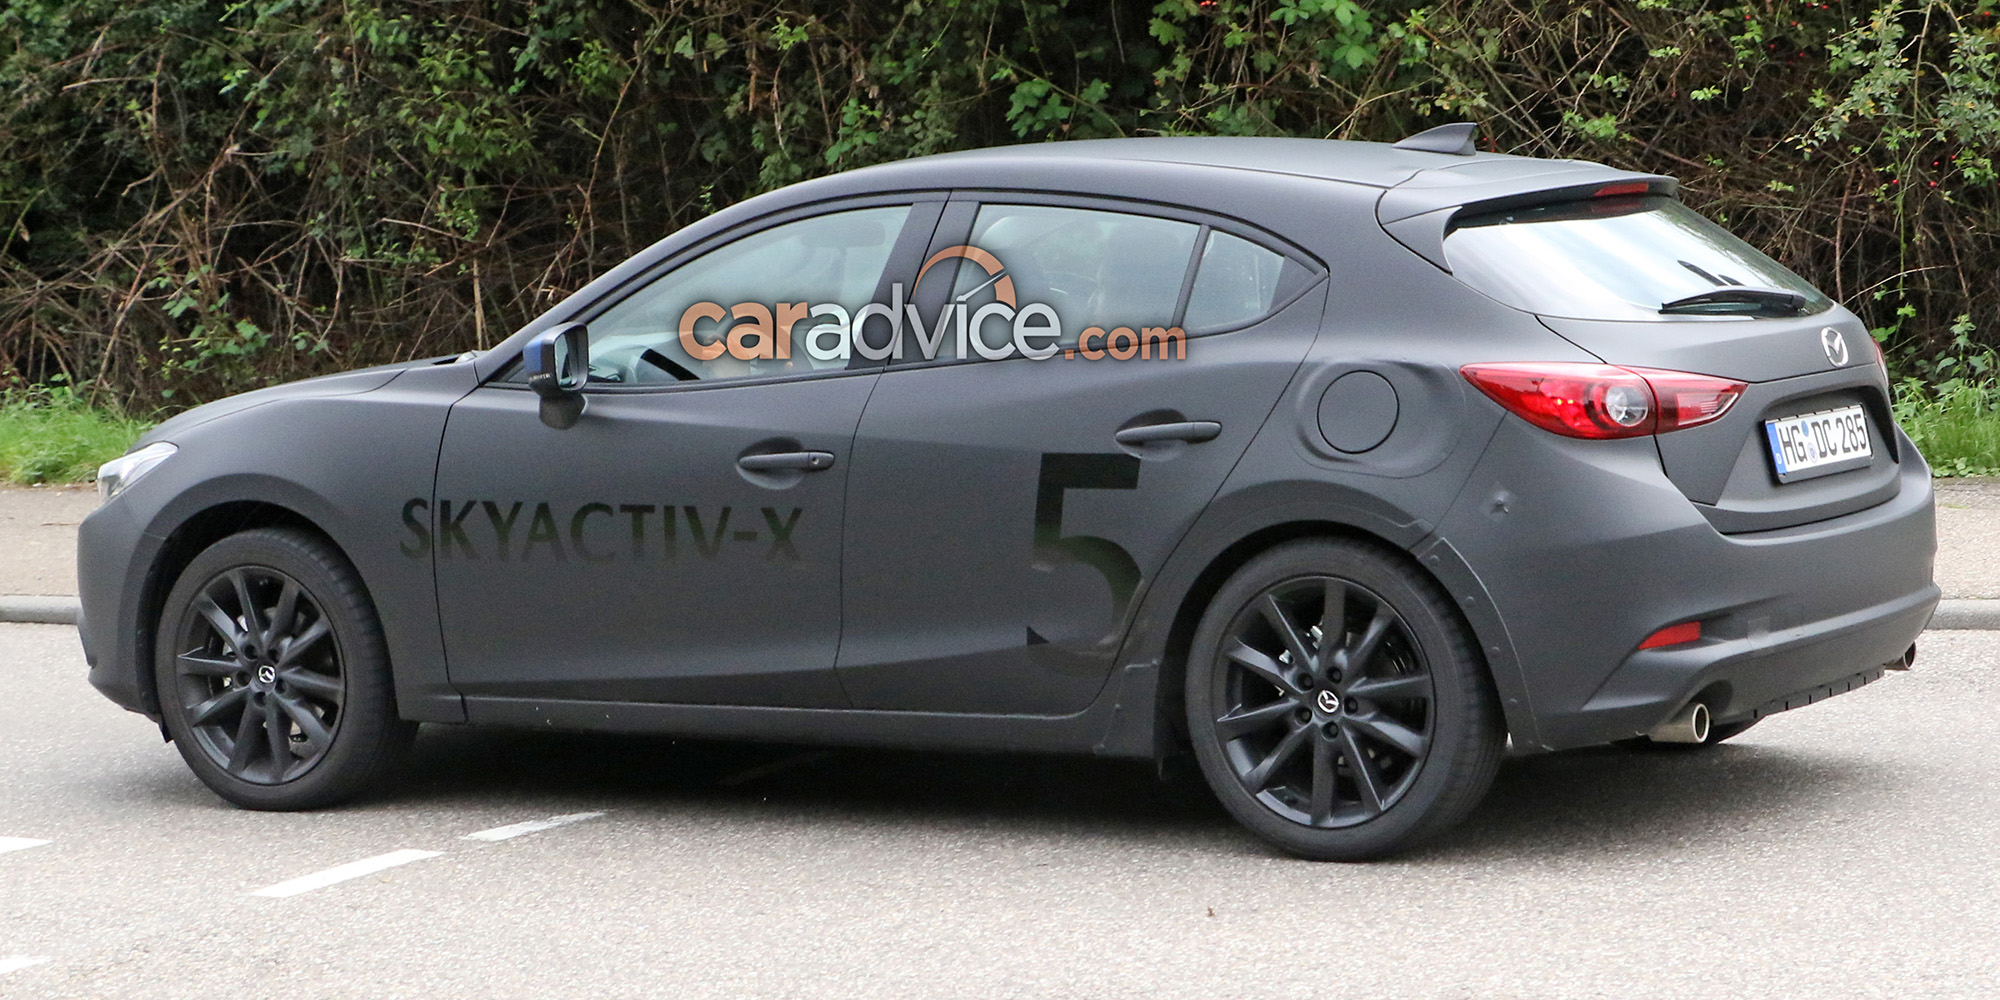 2019 mazda 3 spied with skyactiv x engine photos caradvice. Black Bedroom Furniture Sets. Home Design Ideas